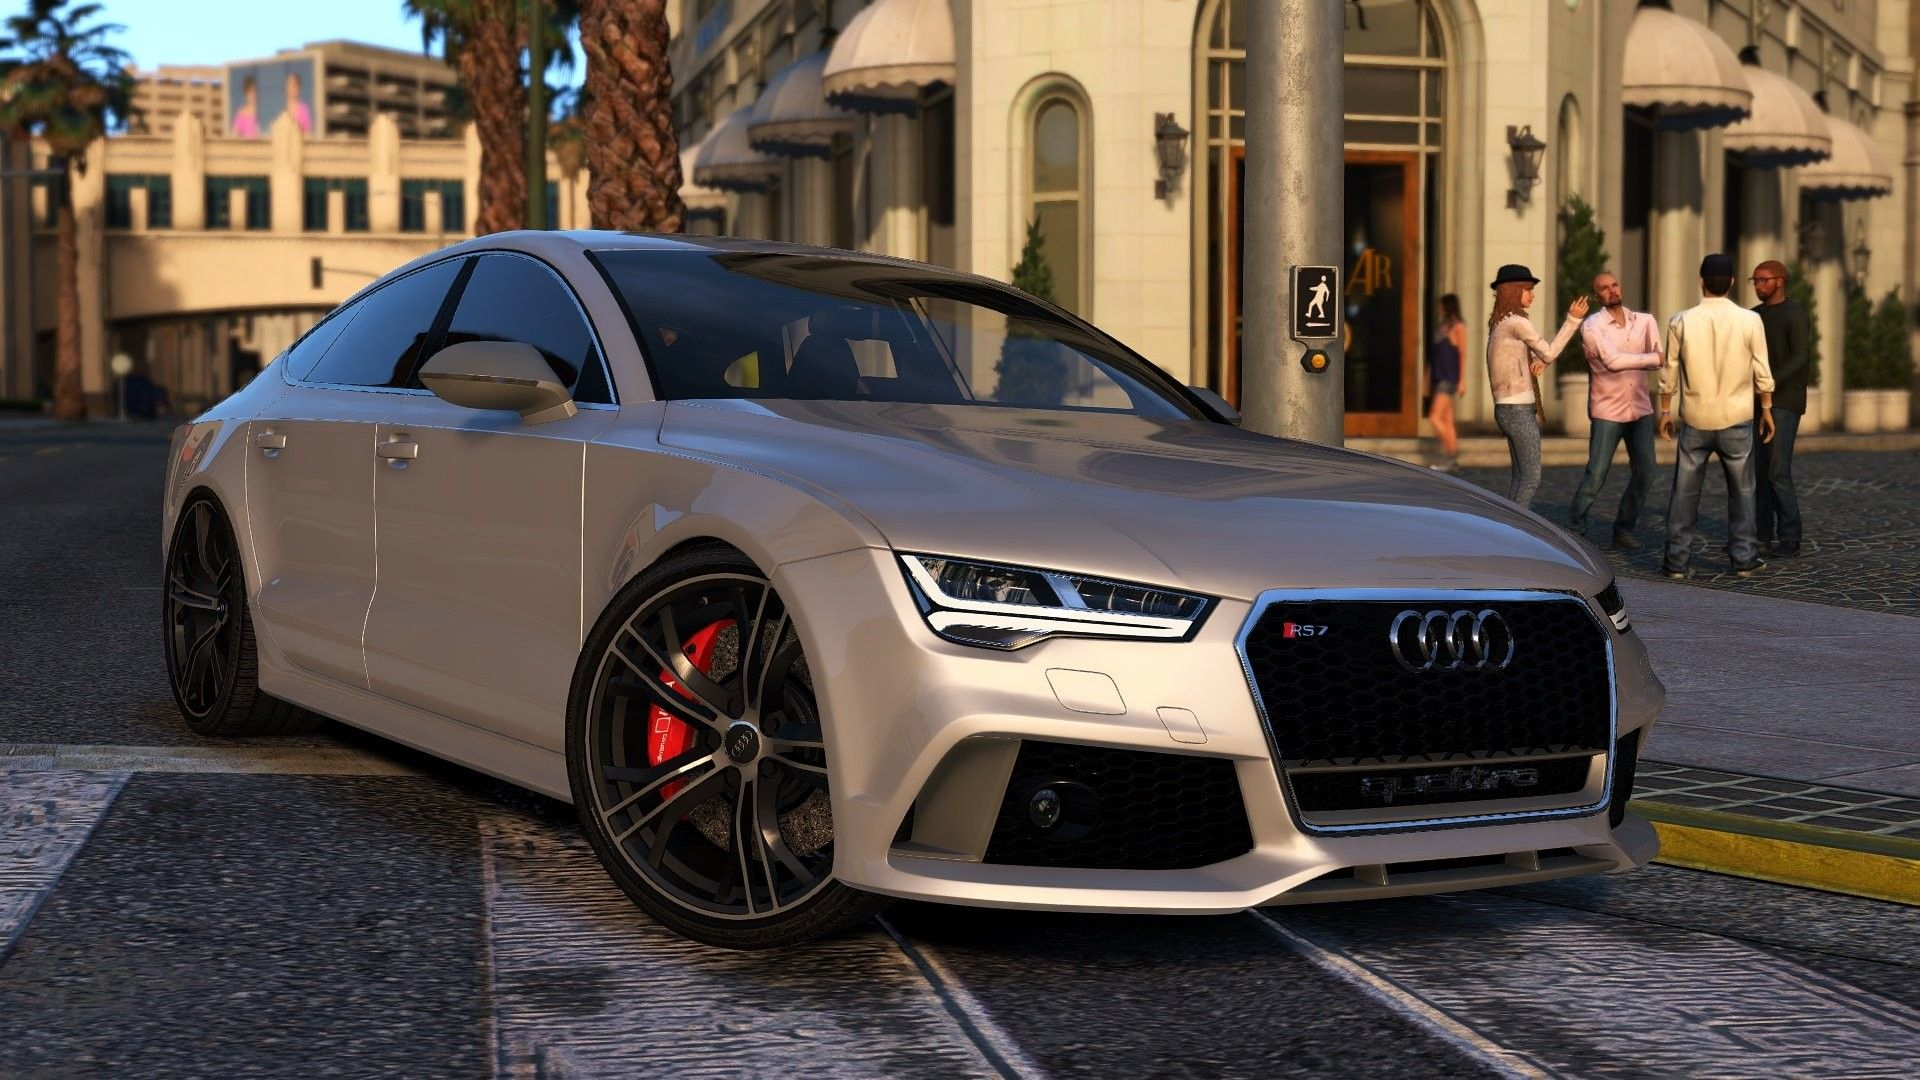 Audi Rs7 Wallpapers Top Free Audi Rs7 Backgrounds Wallpaperaccess